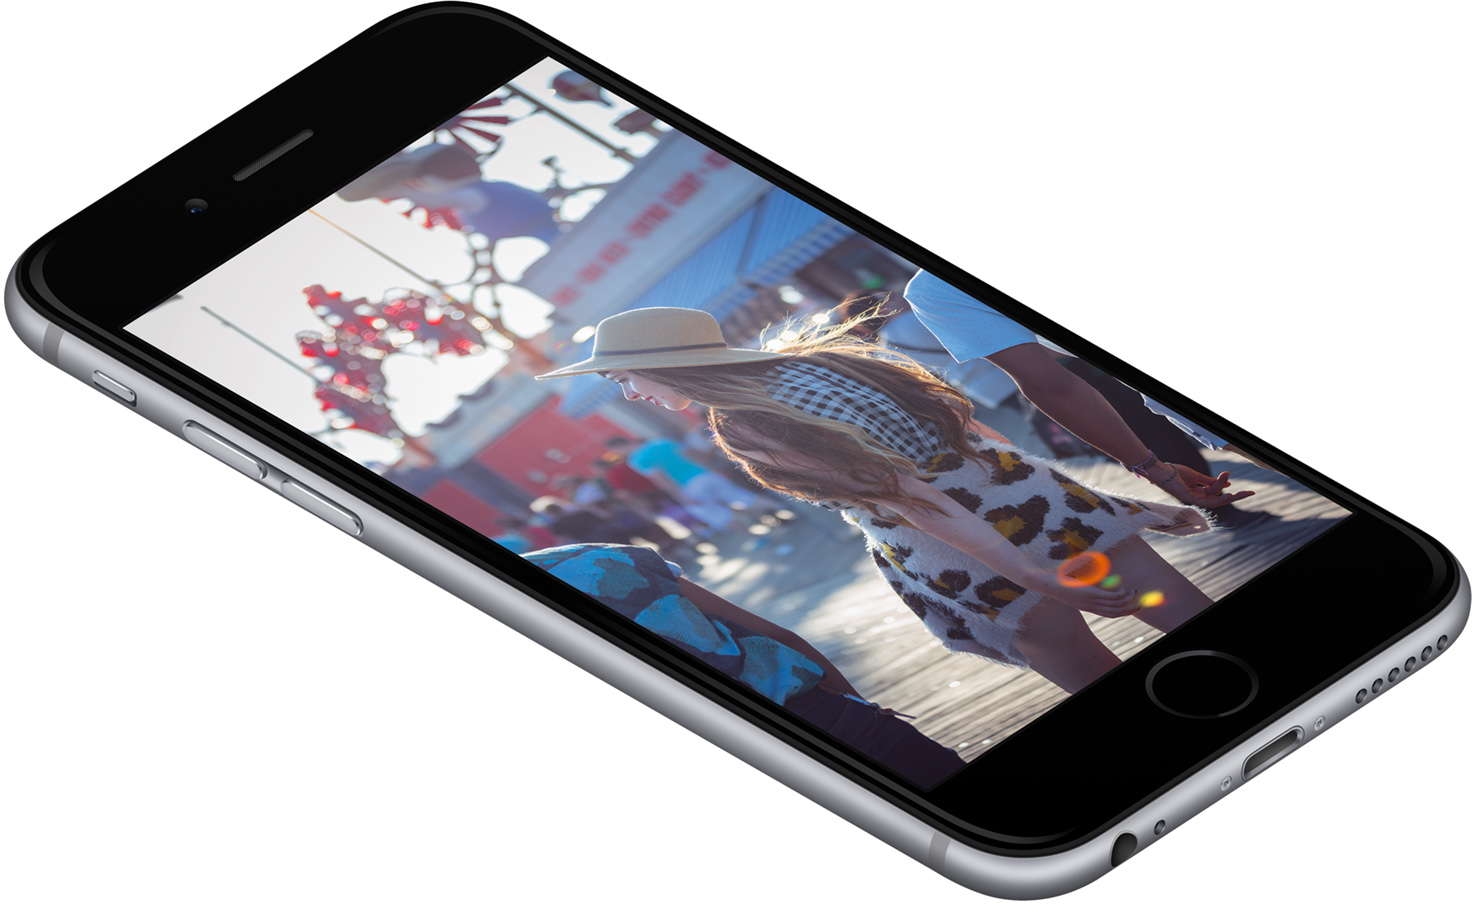 iPhone 6 display color